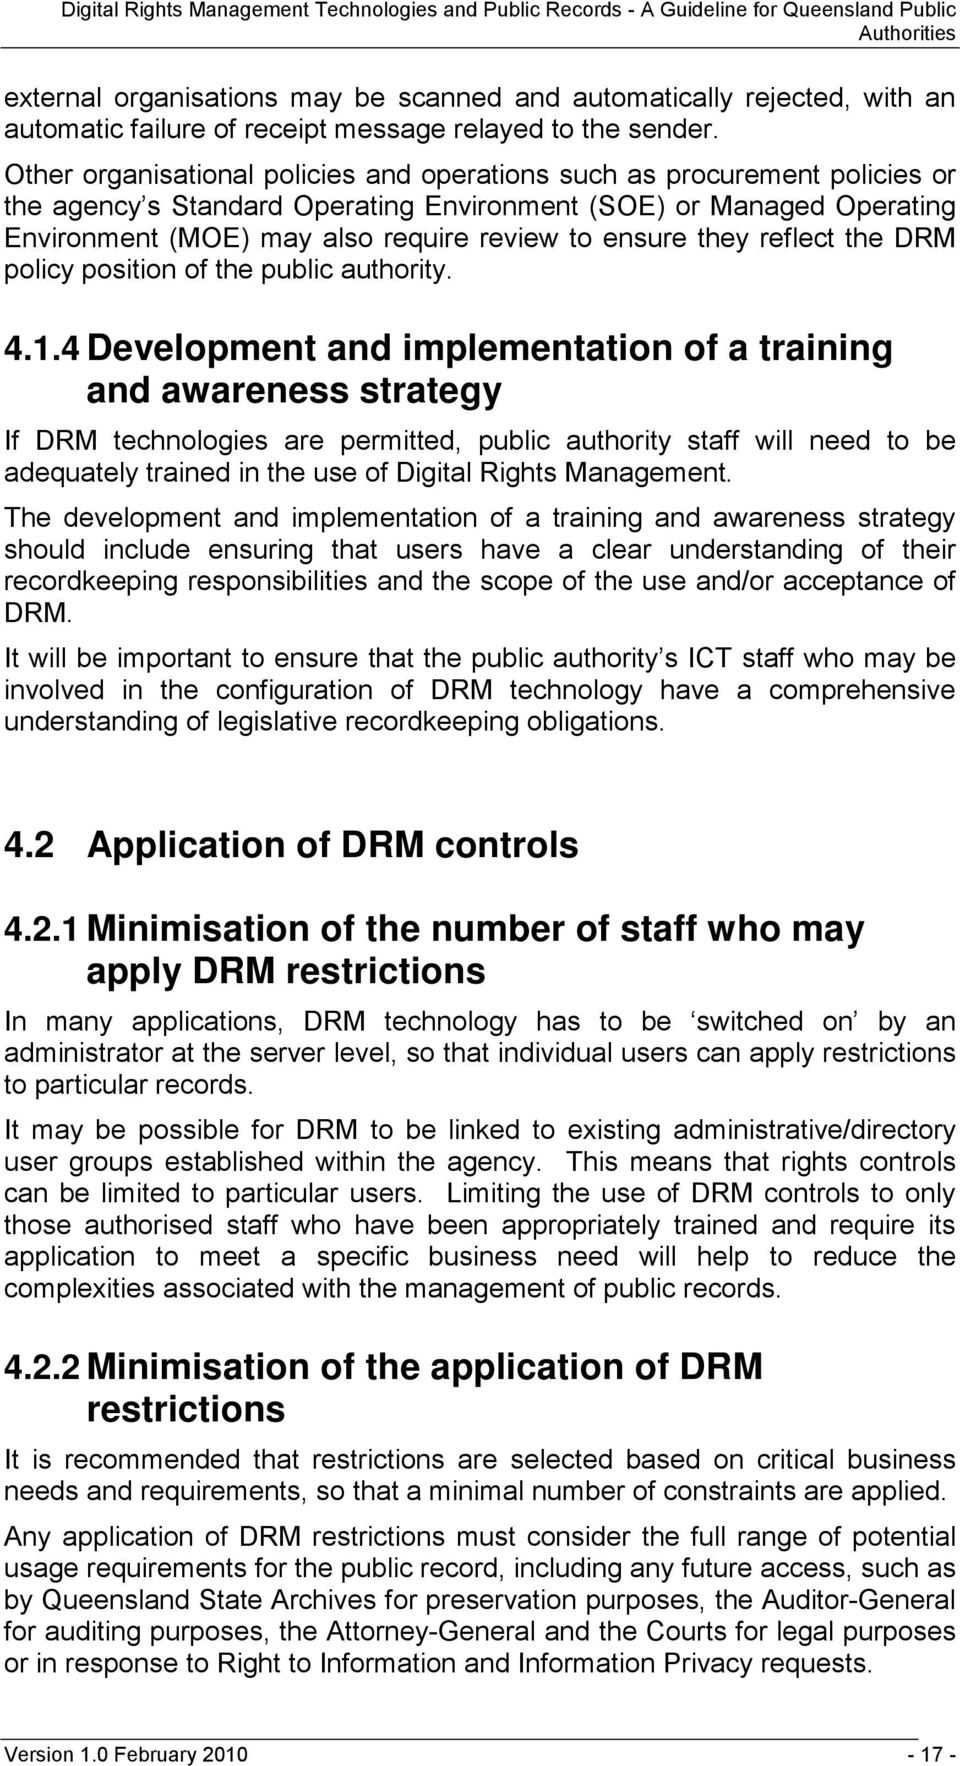 they reflect the DRM policy position of the public authority. 4.1.